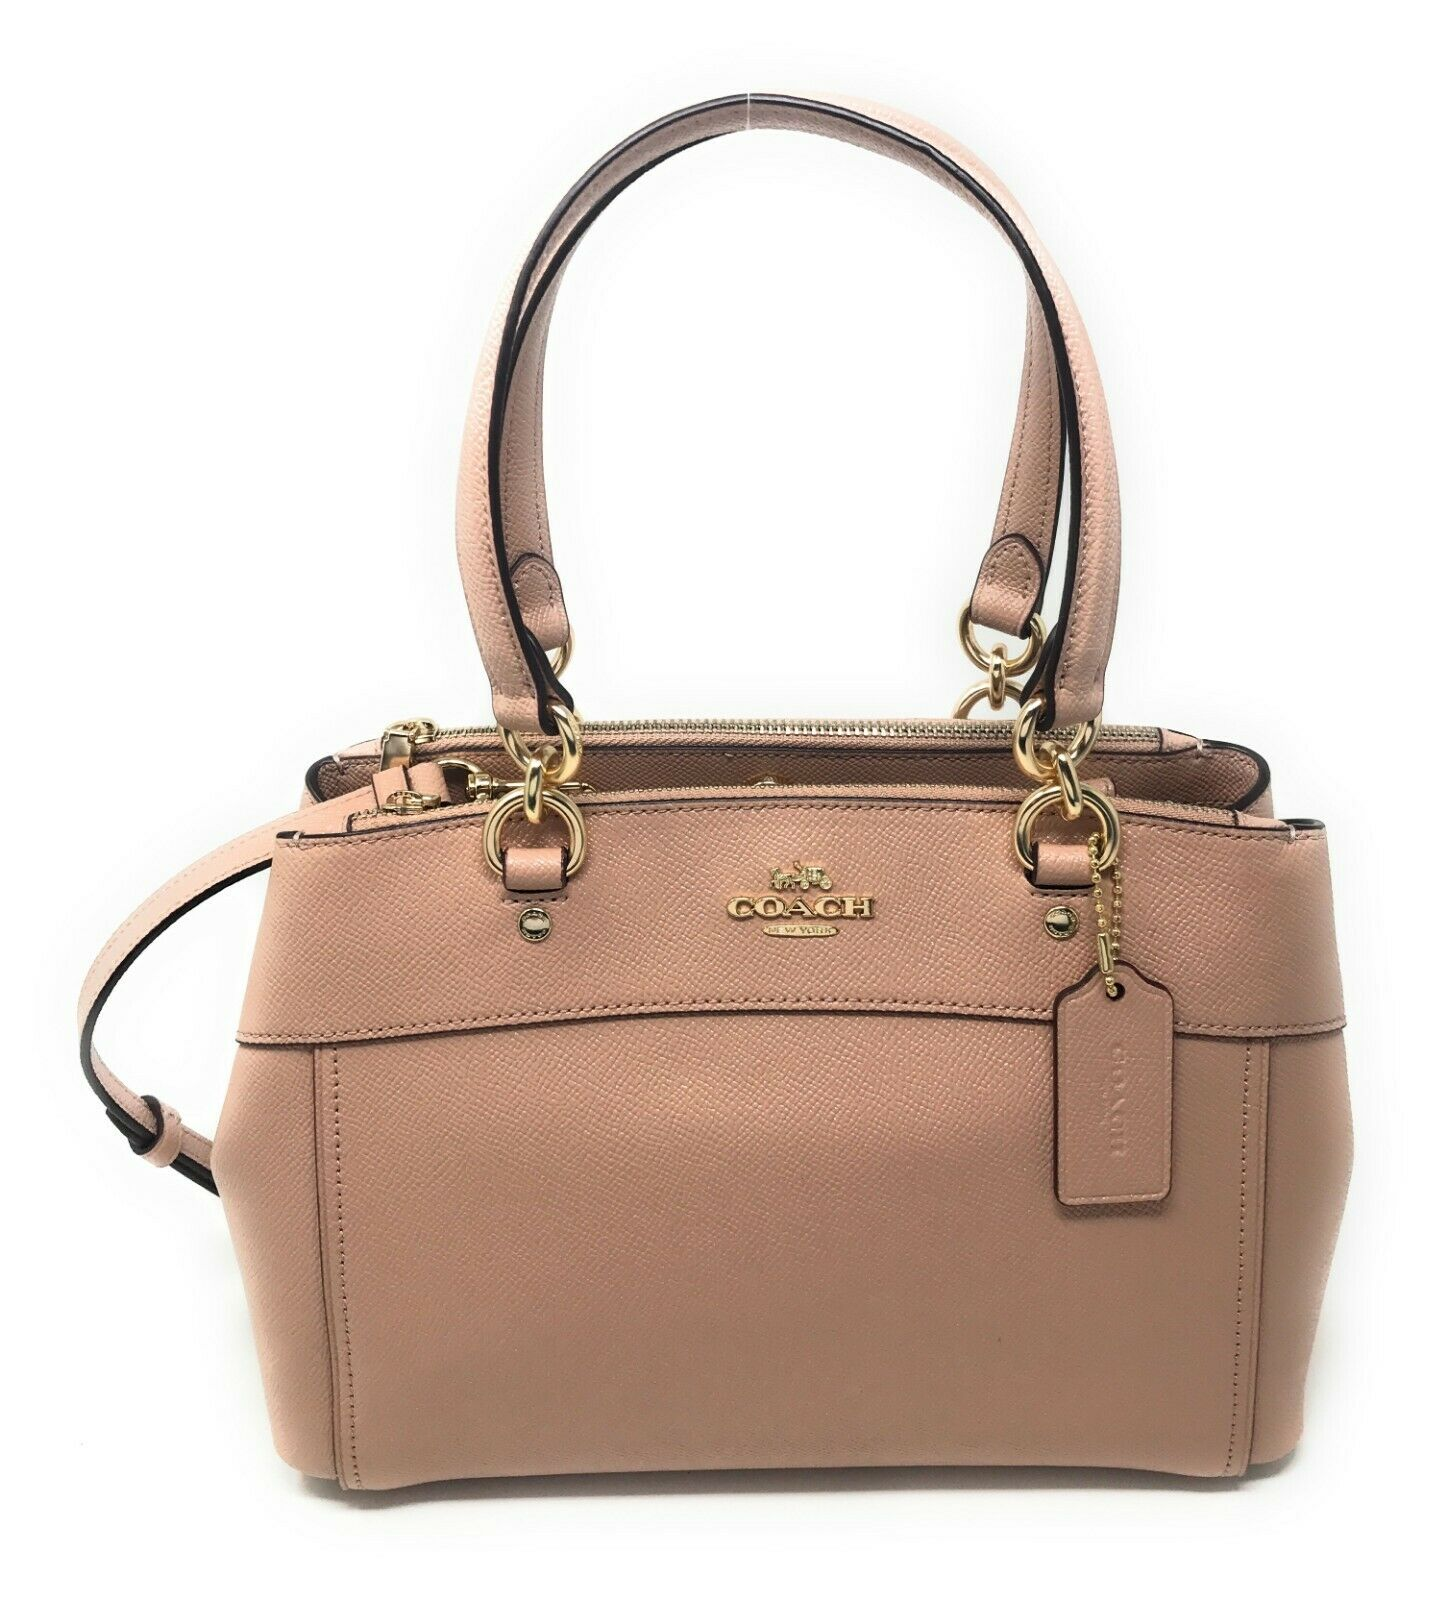 Coach F31251 Mini Brooke Carryall Satchel Handbag Purse Bag Glitter Nude $375